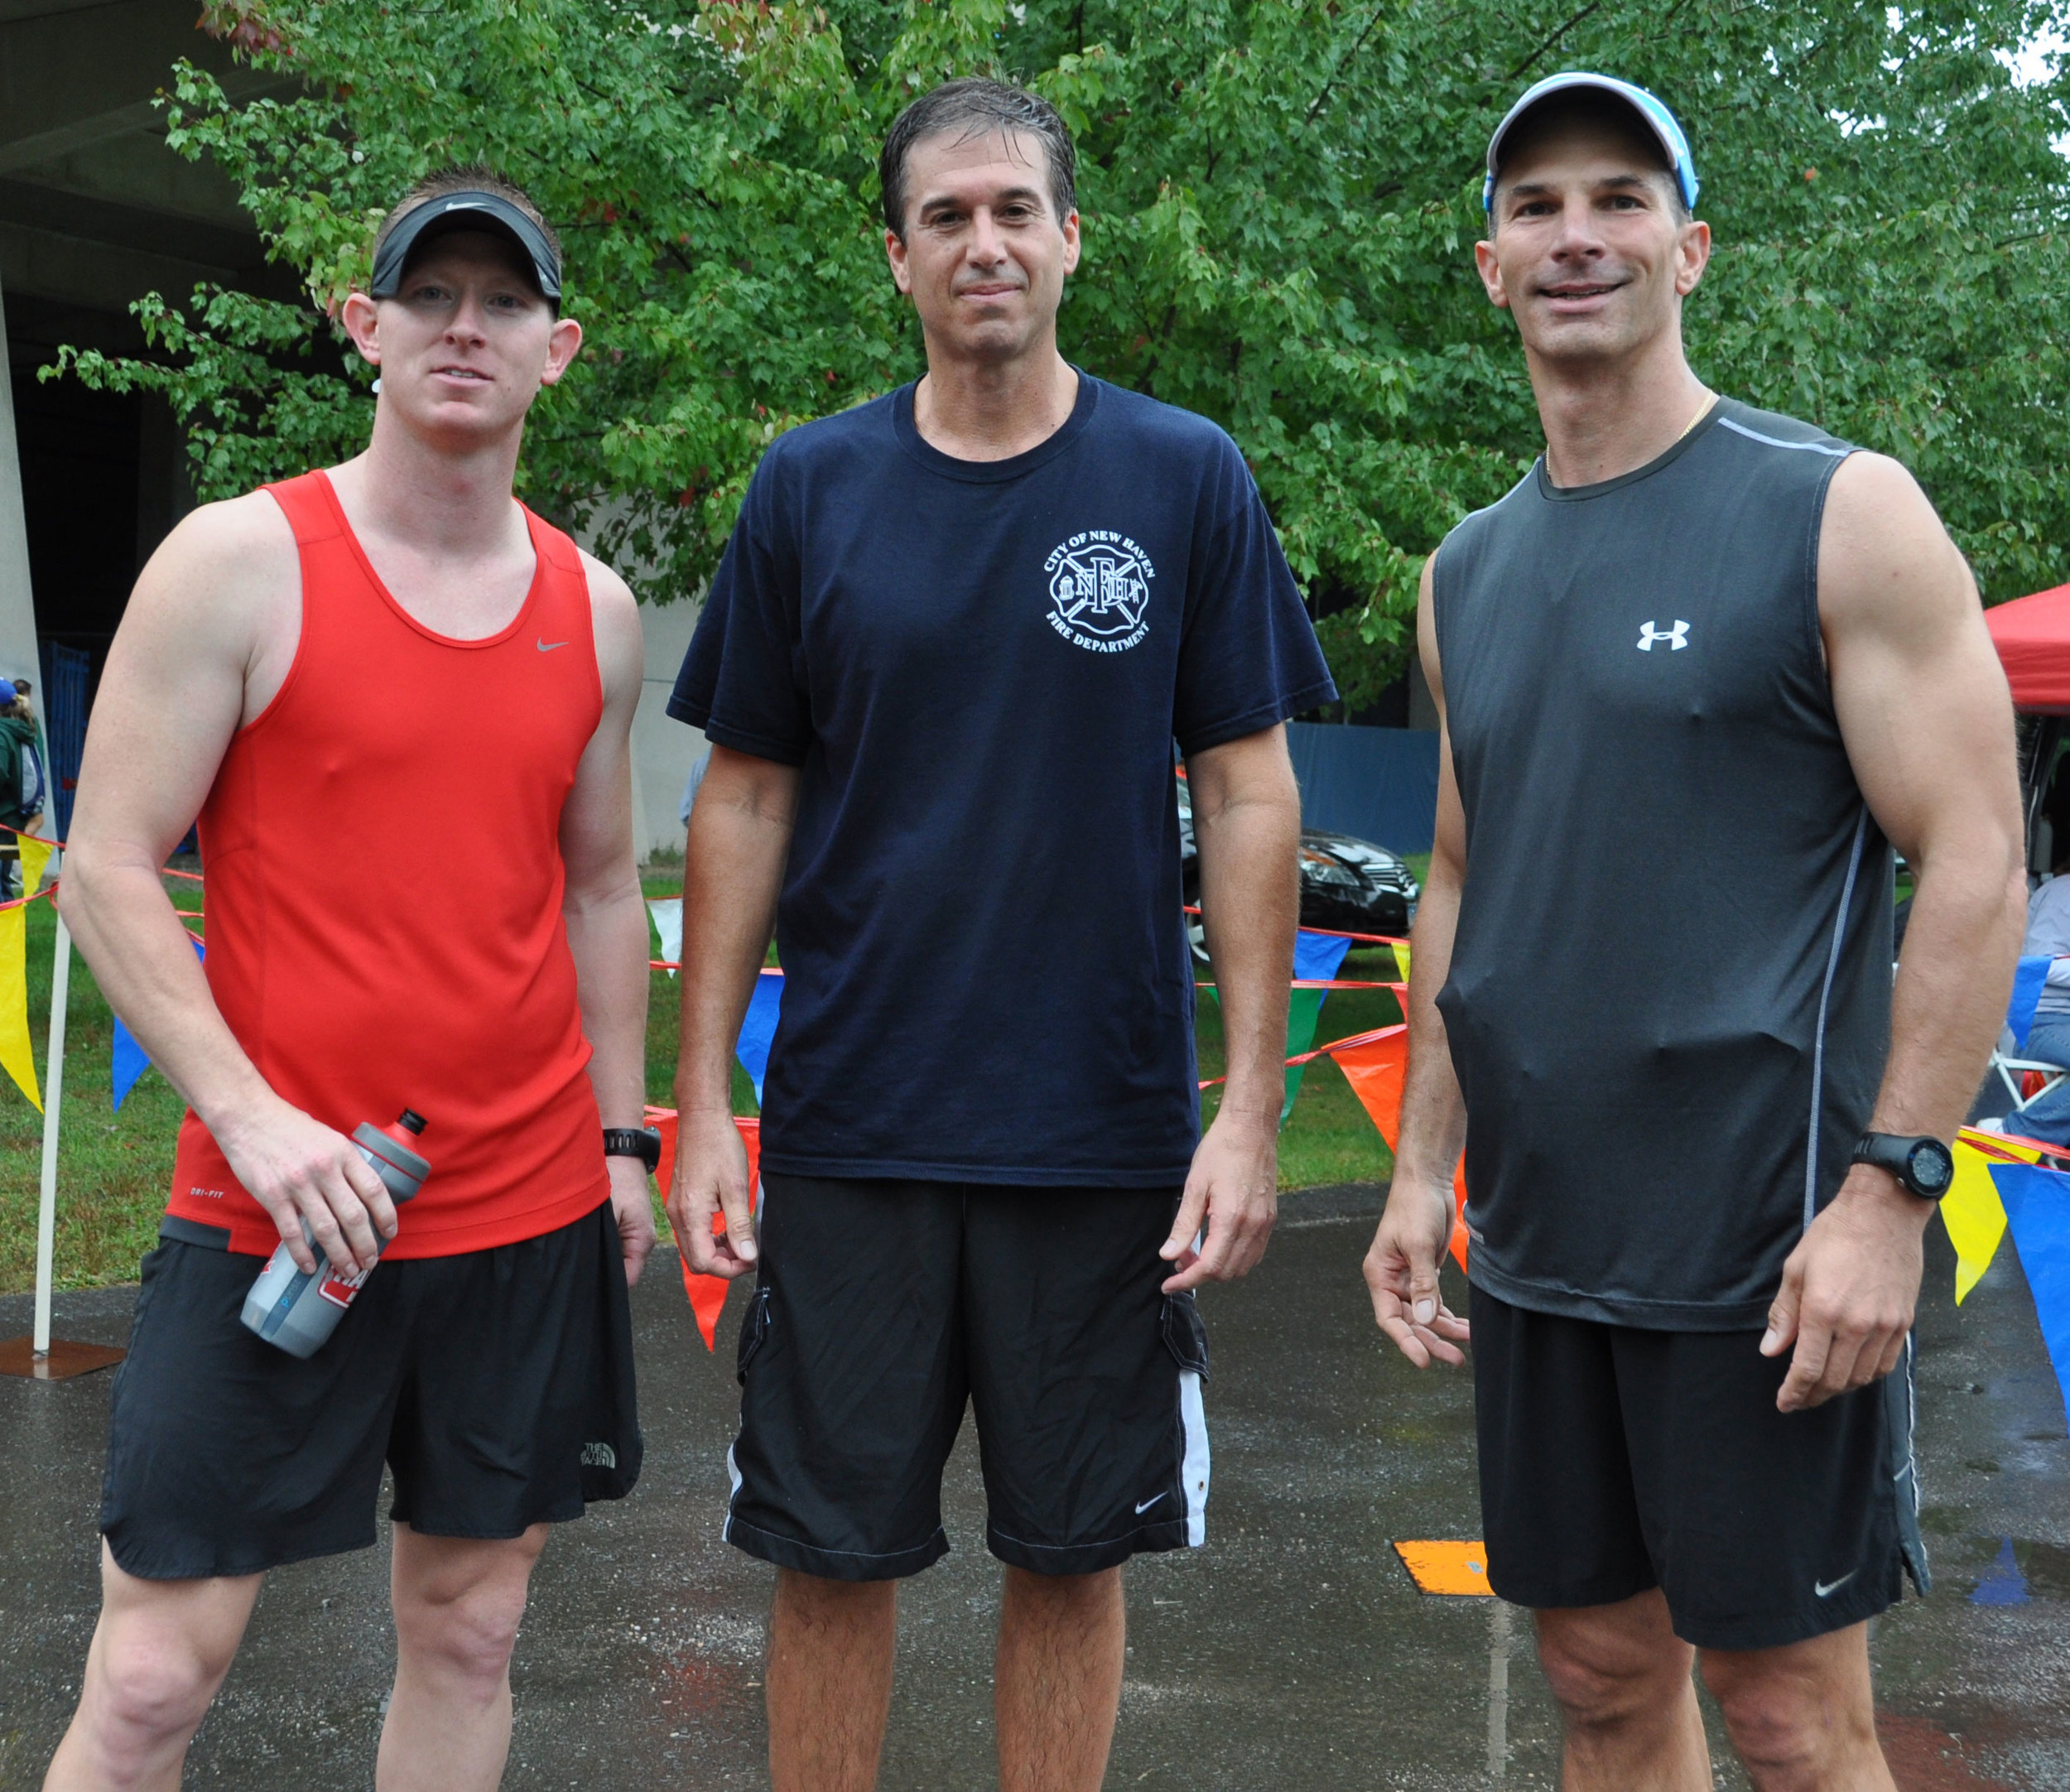 Firefighters KC Klett, Mike Pozika and John Sheppa ran a relay from New Britain to New Haven to raise money for the Tommy Fund